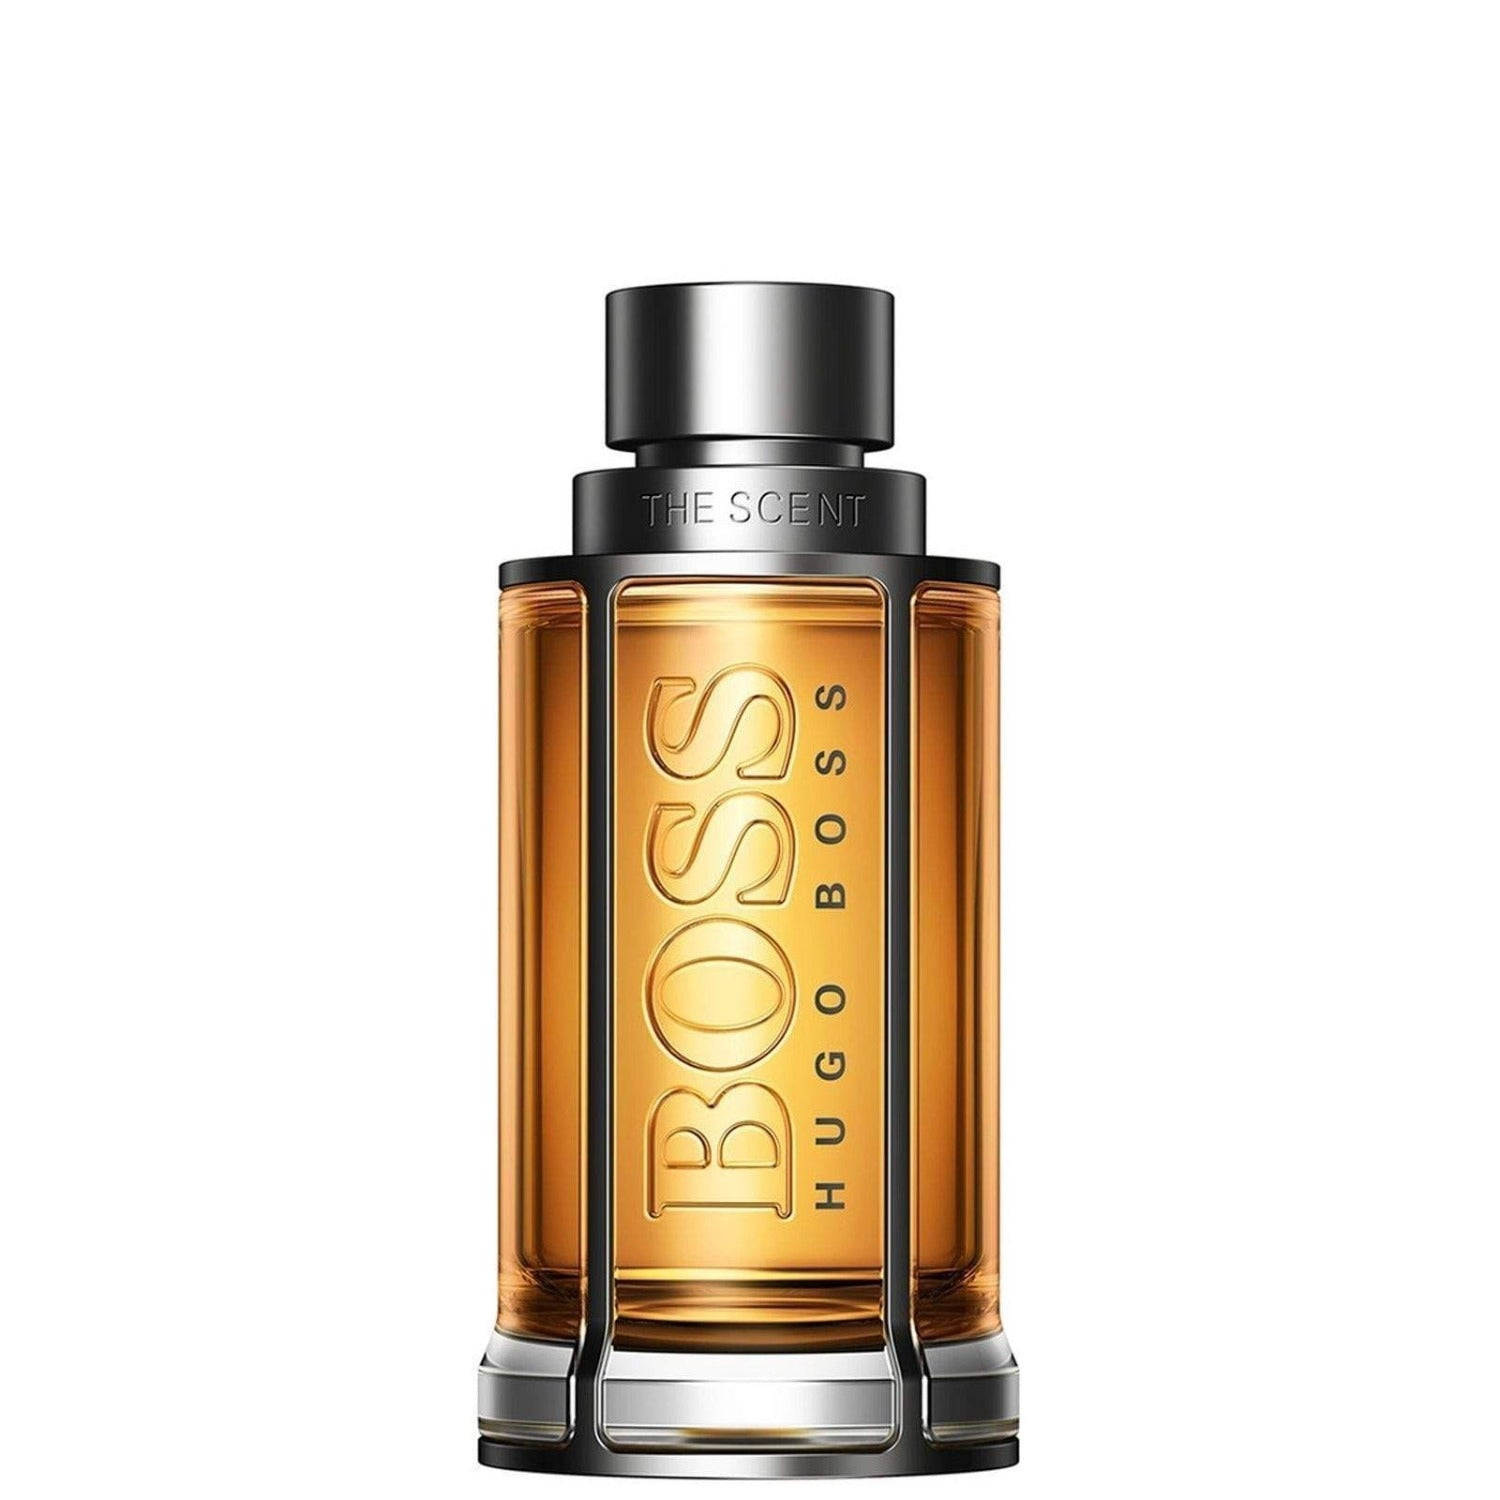 Hugo Boss The Scent Edt 100 ml - Netnaturshop